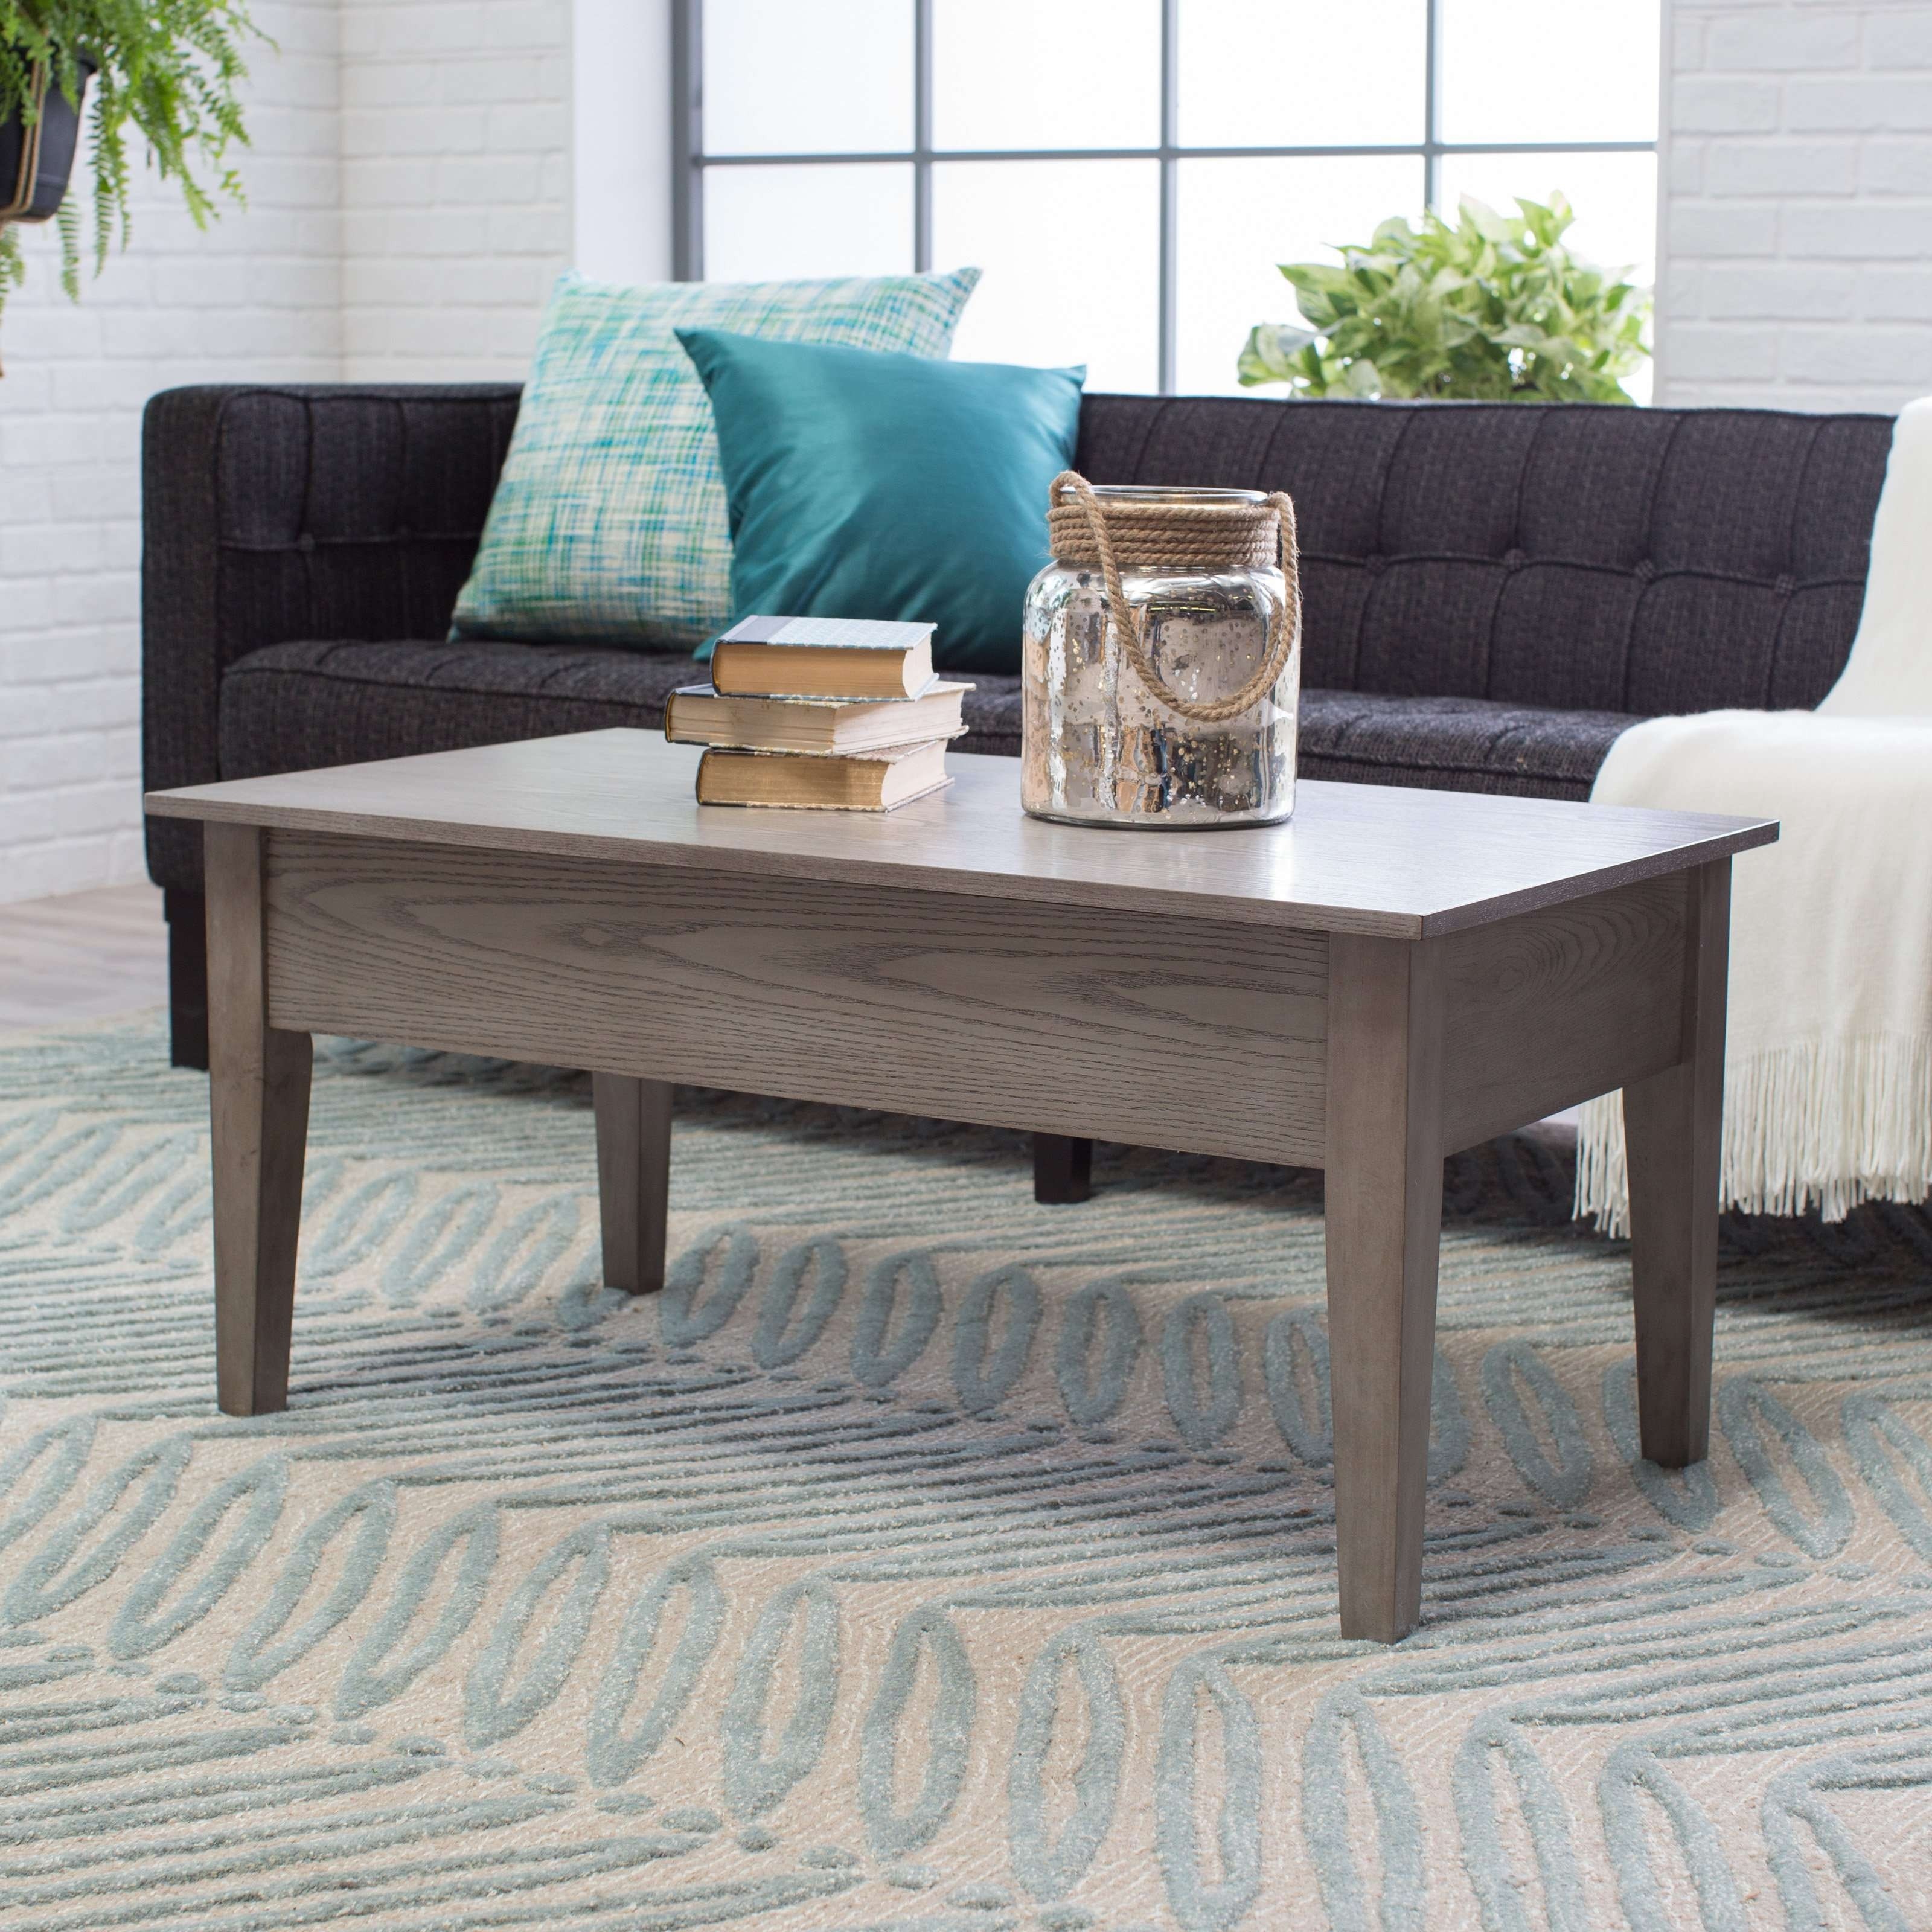 Turner Lift Top Coffee Table – Gray (View 6 of 20)